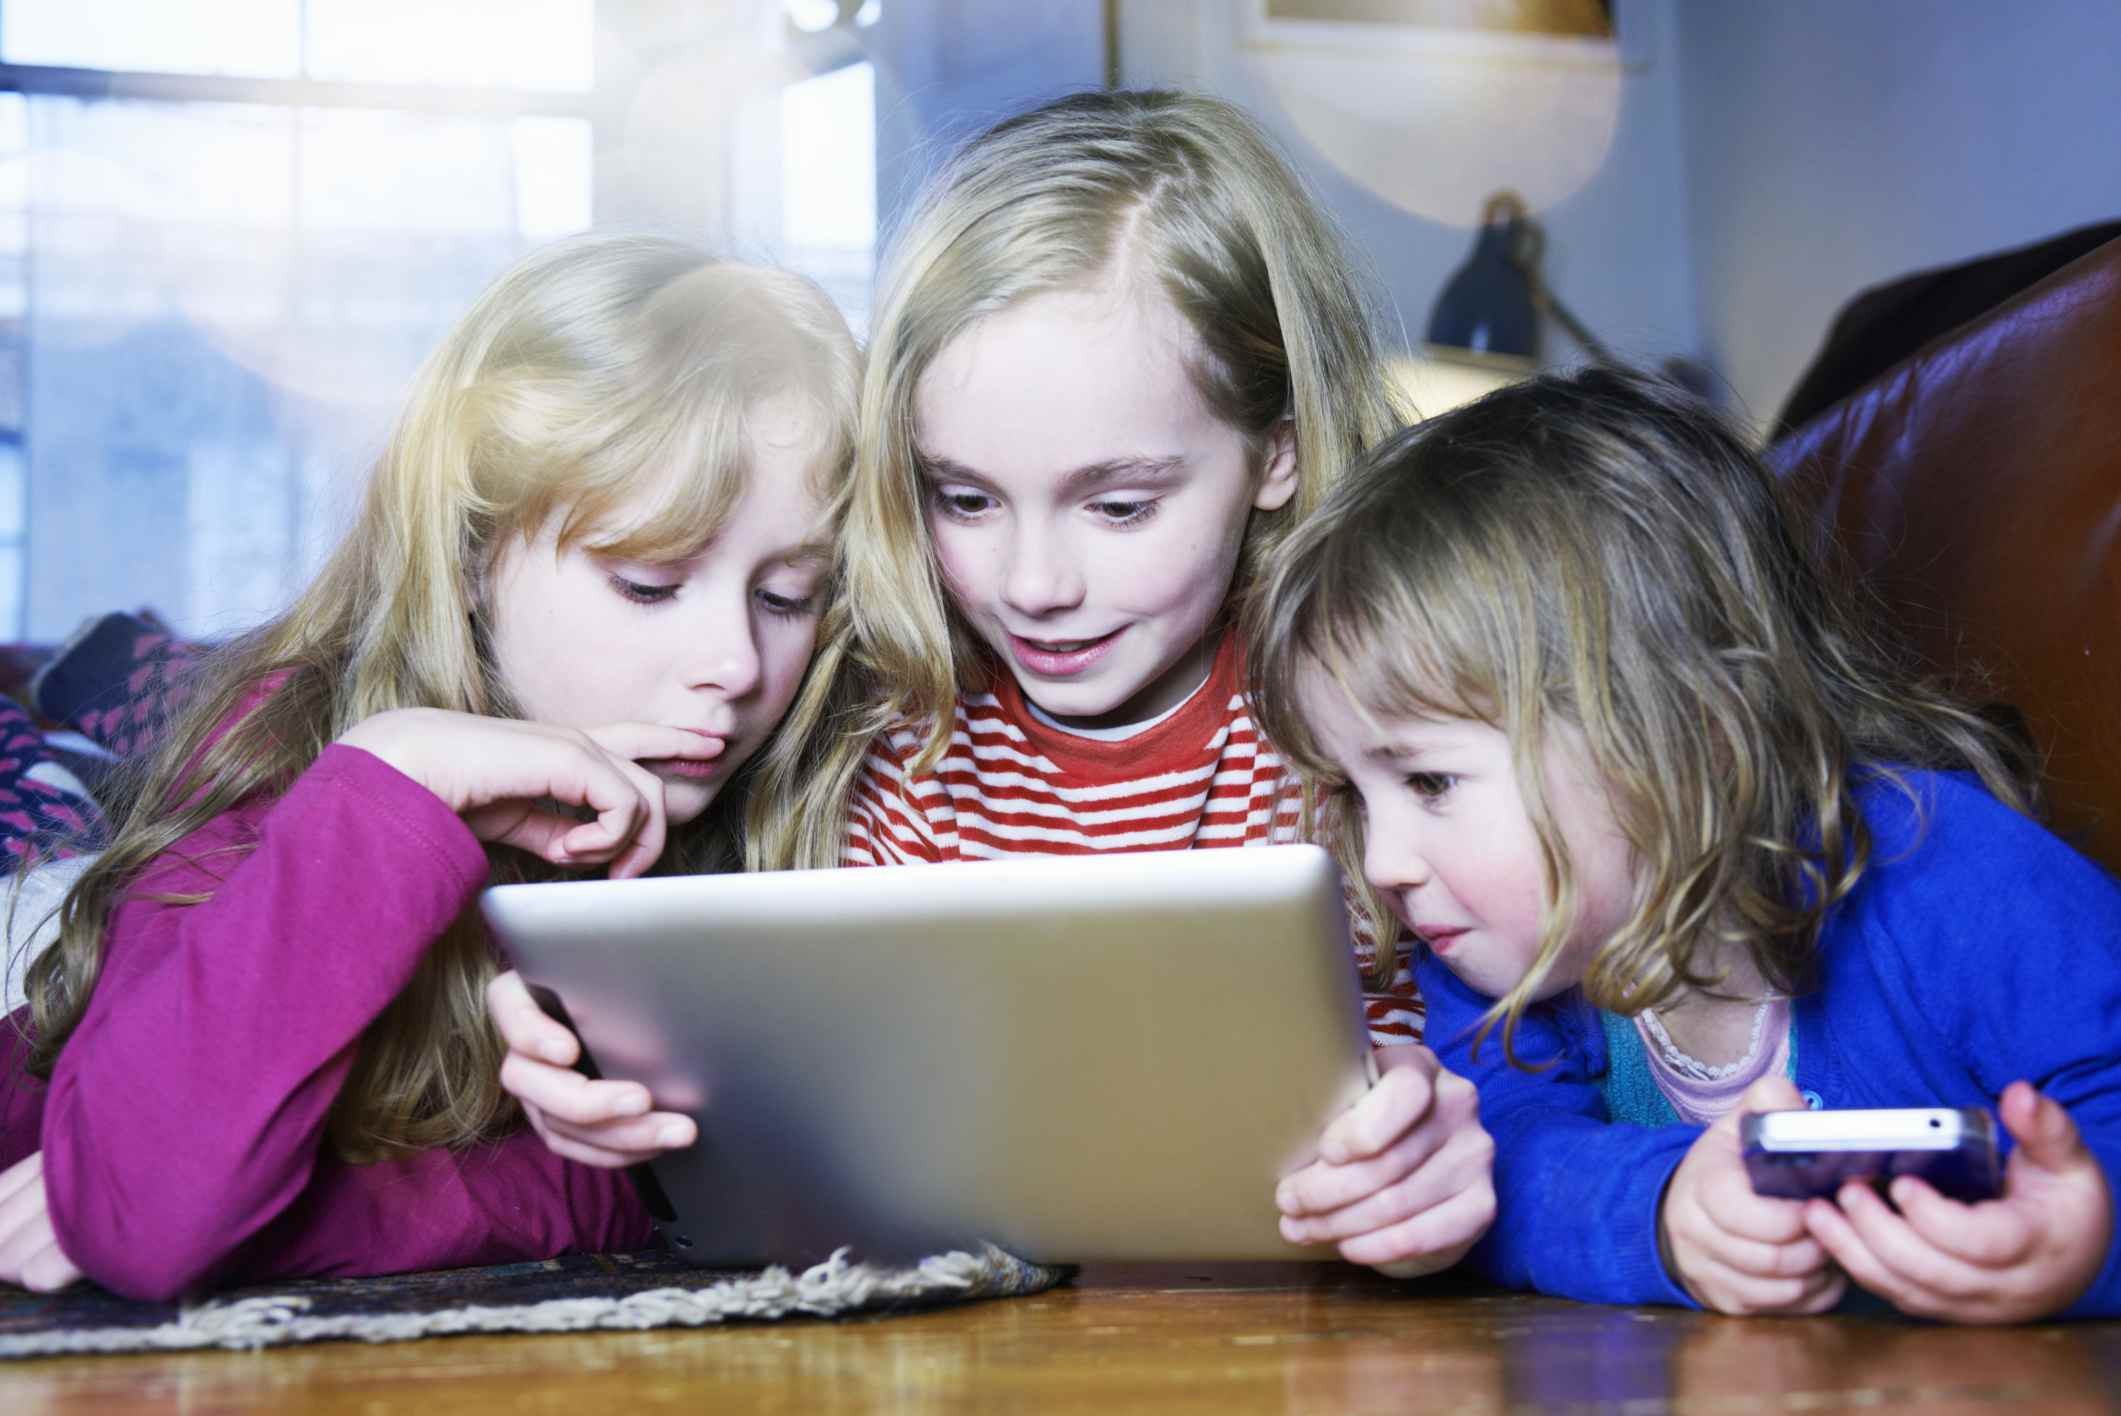 3 girls using a tablet